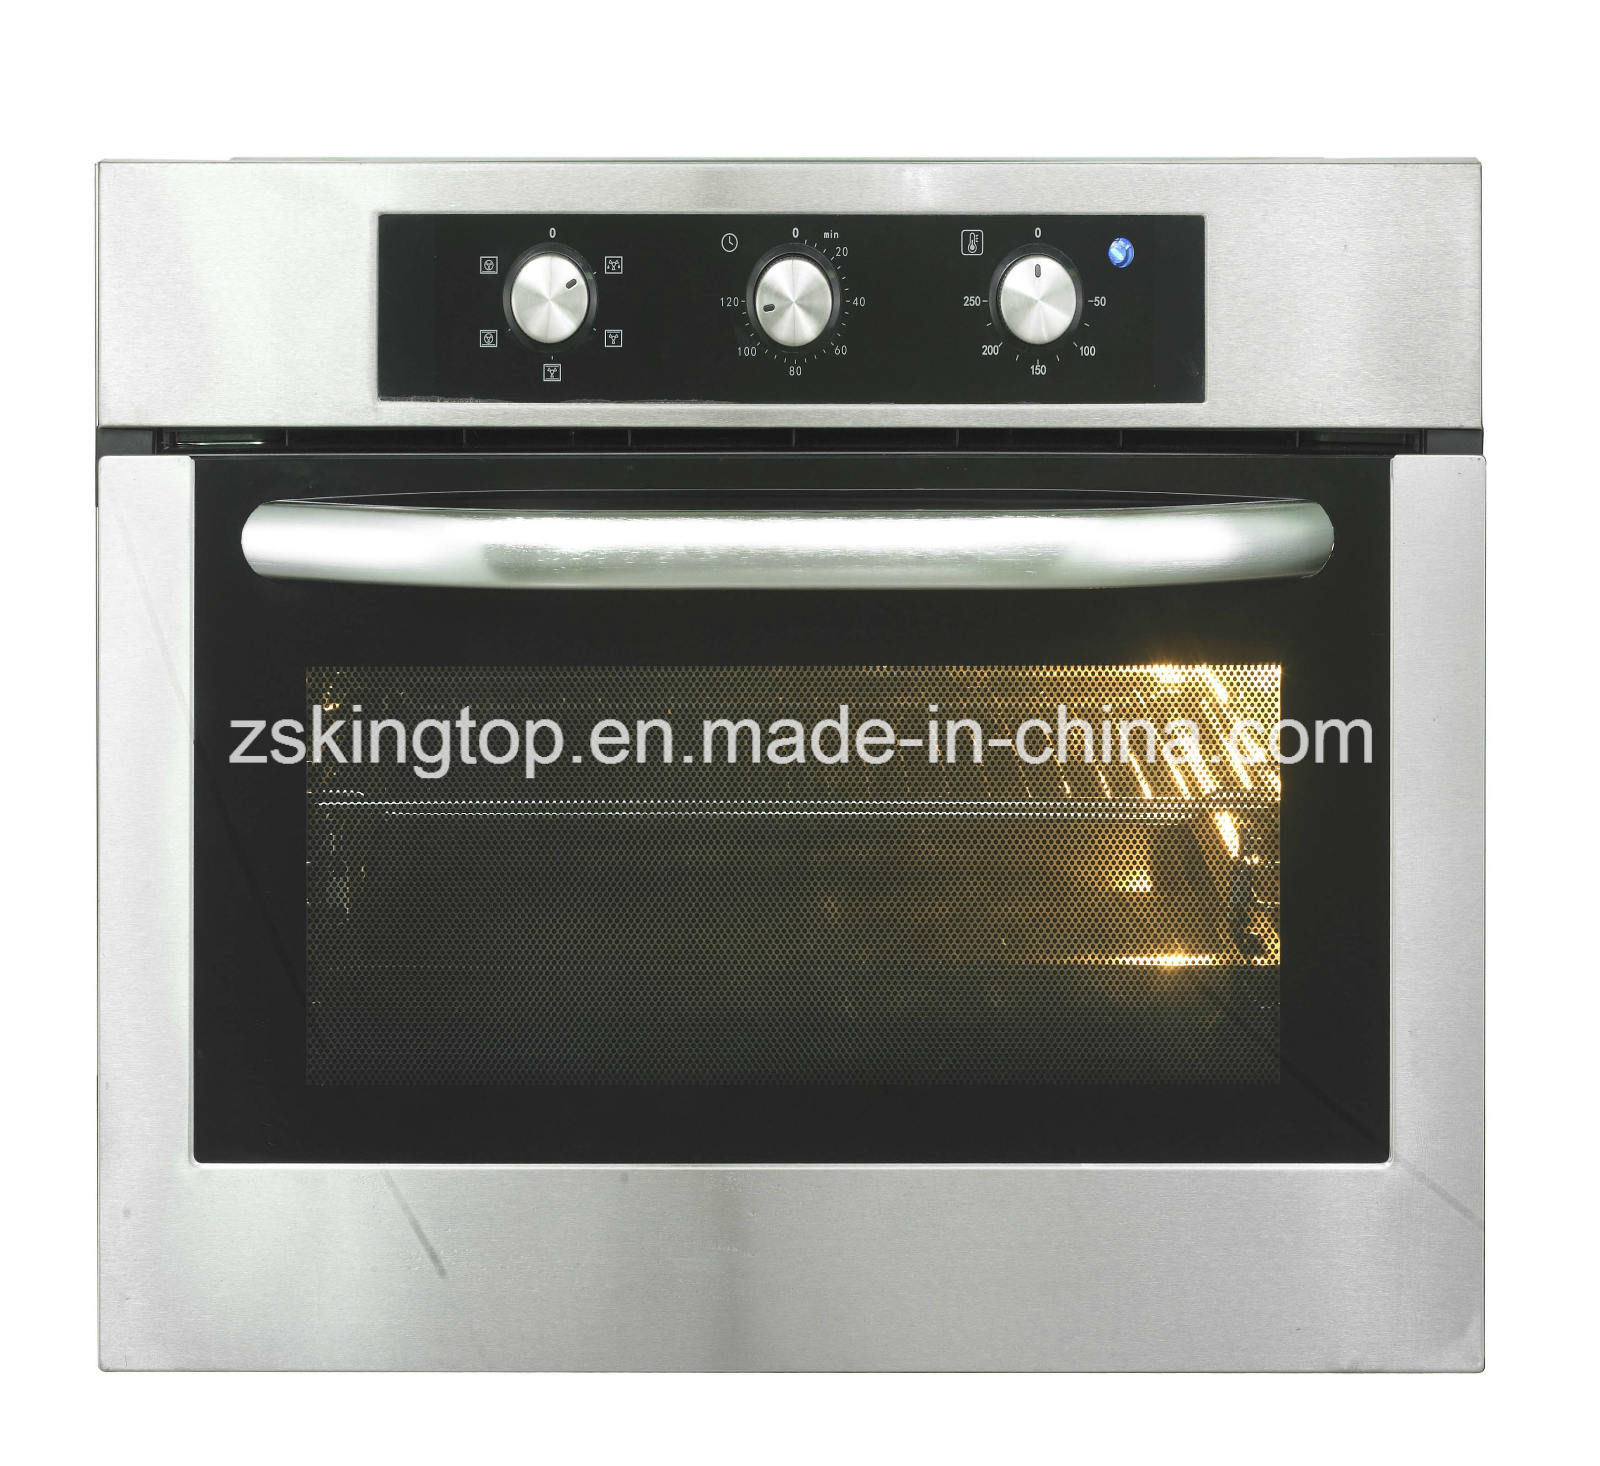 Built-in Portable Oven Mini Microwave Oven